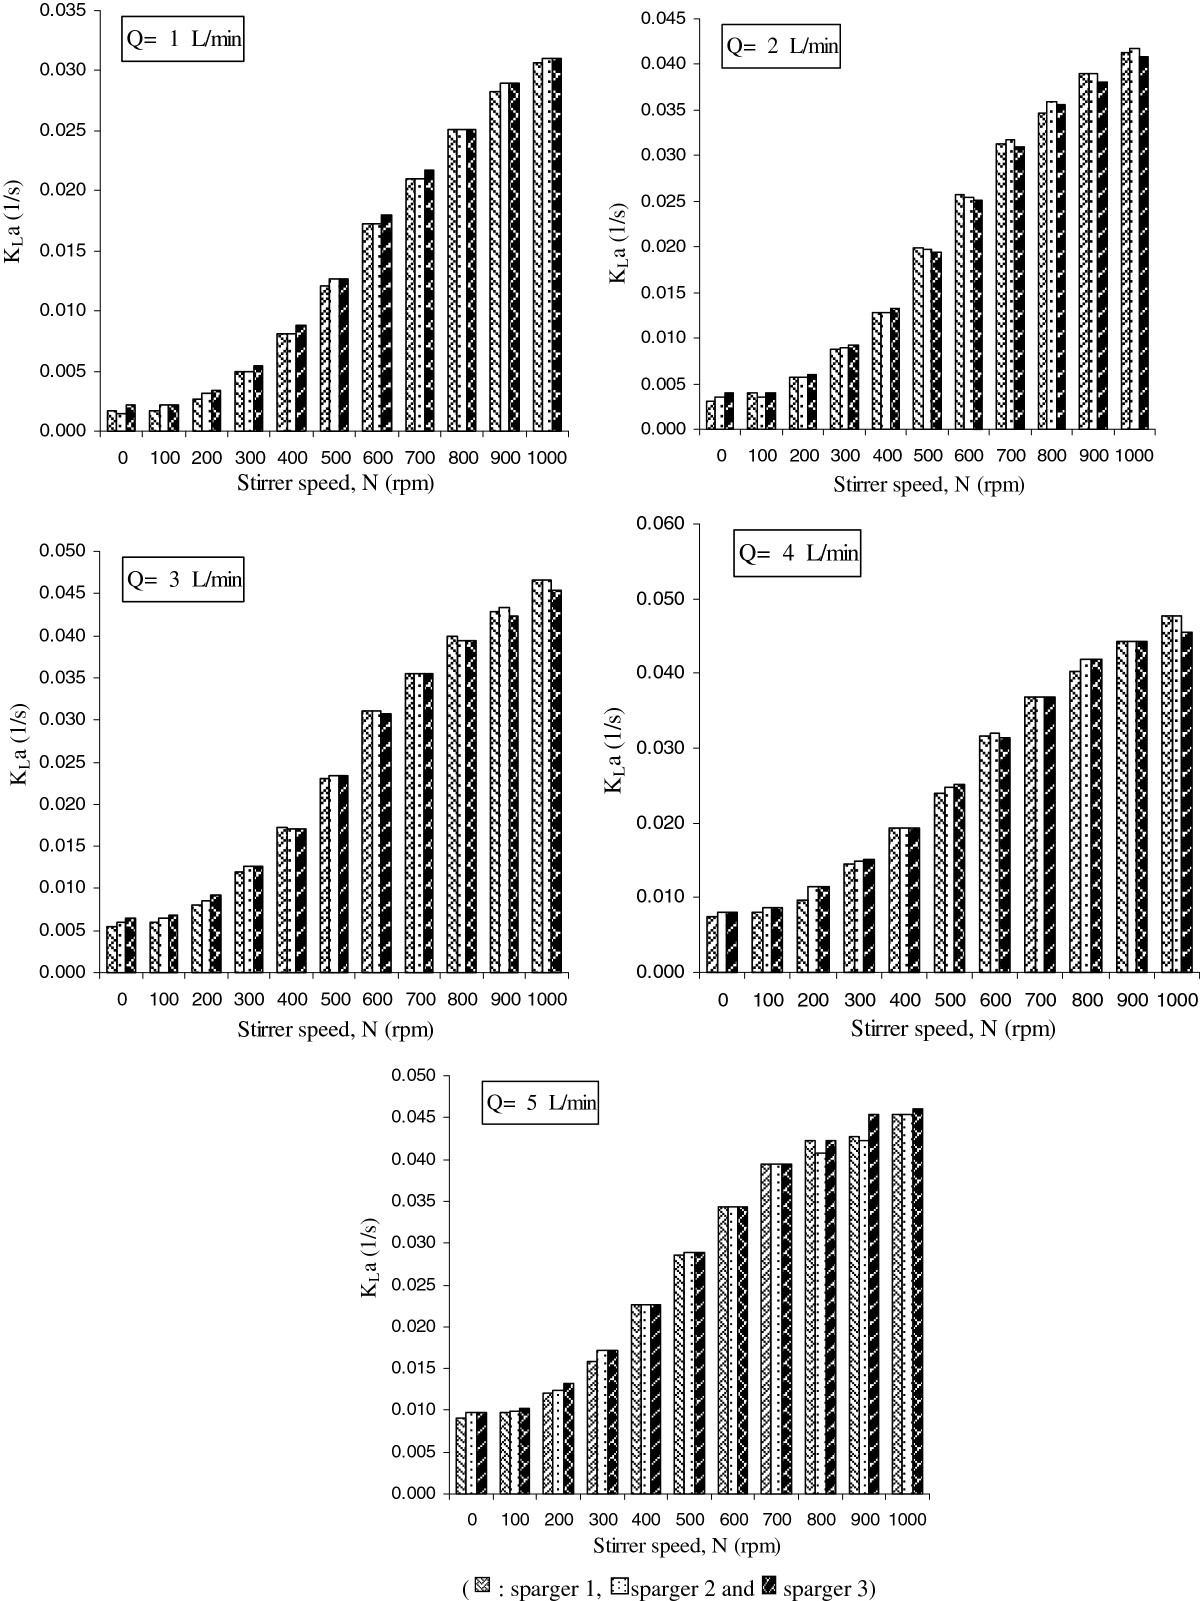 http://static-content.springer.com/image/art%3A10.1186%2F1735-2746-10-6/MediaObjects/40201_2013_Article_32_Fig5_HTML.jpg